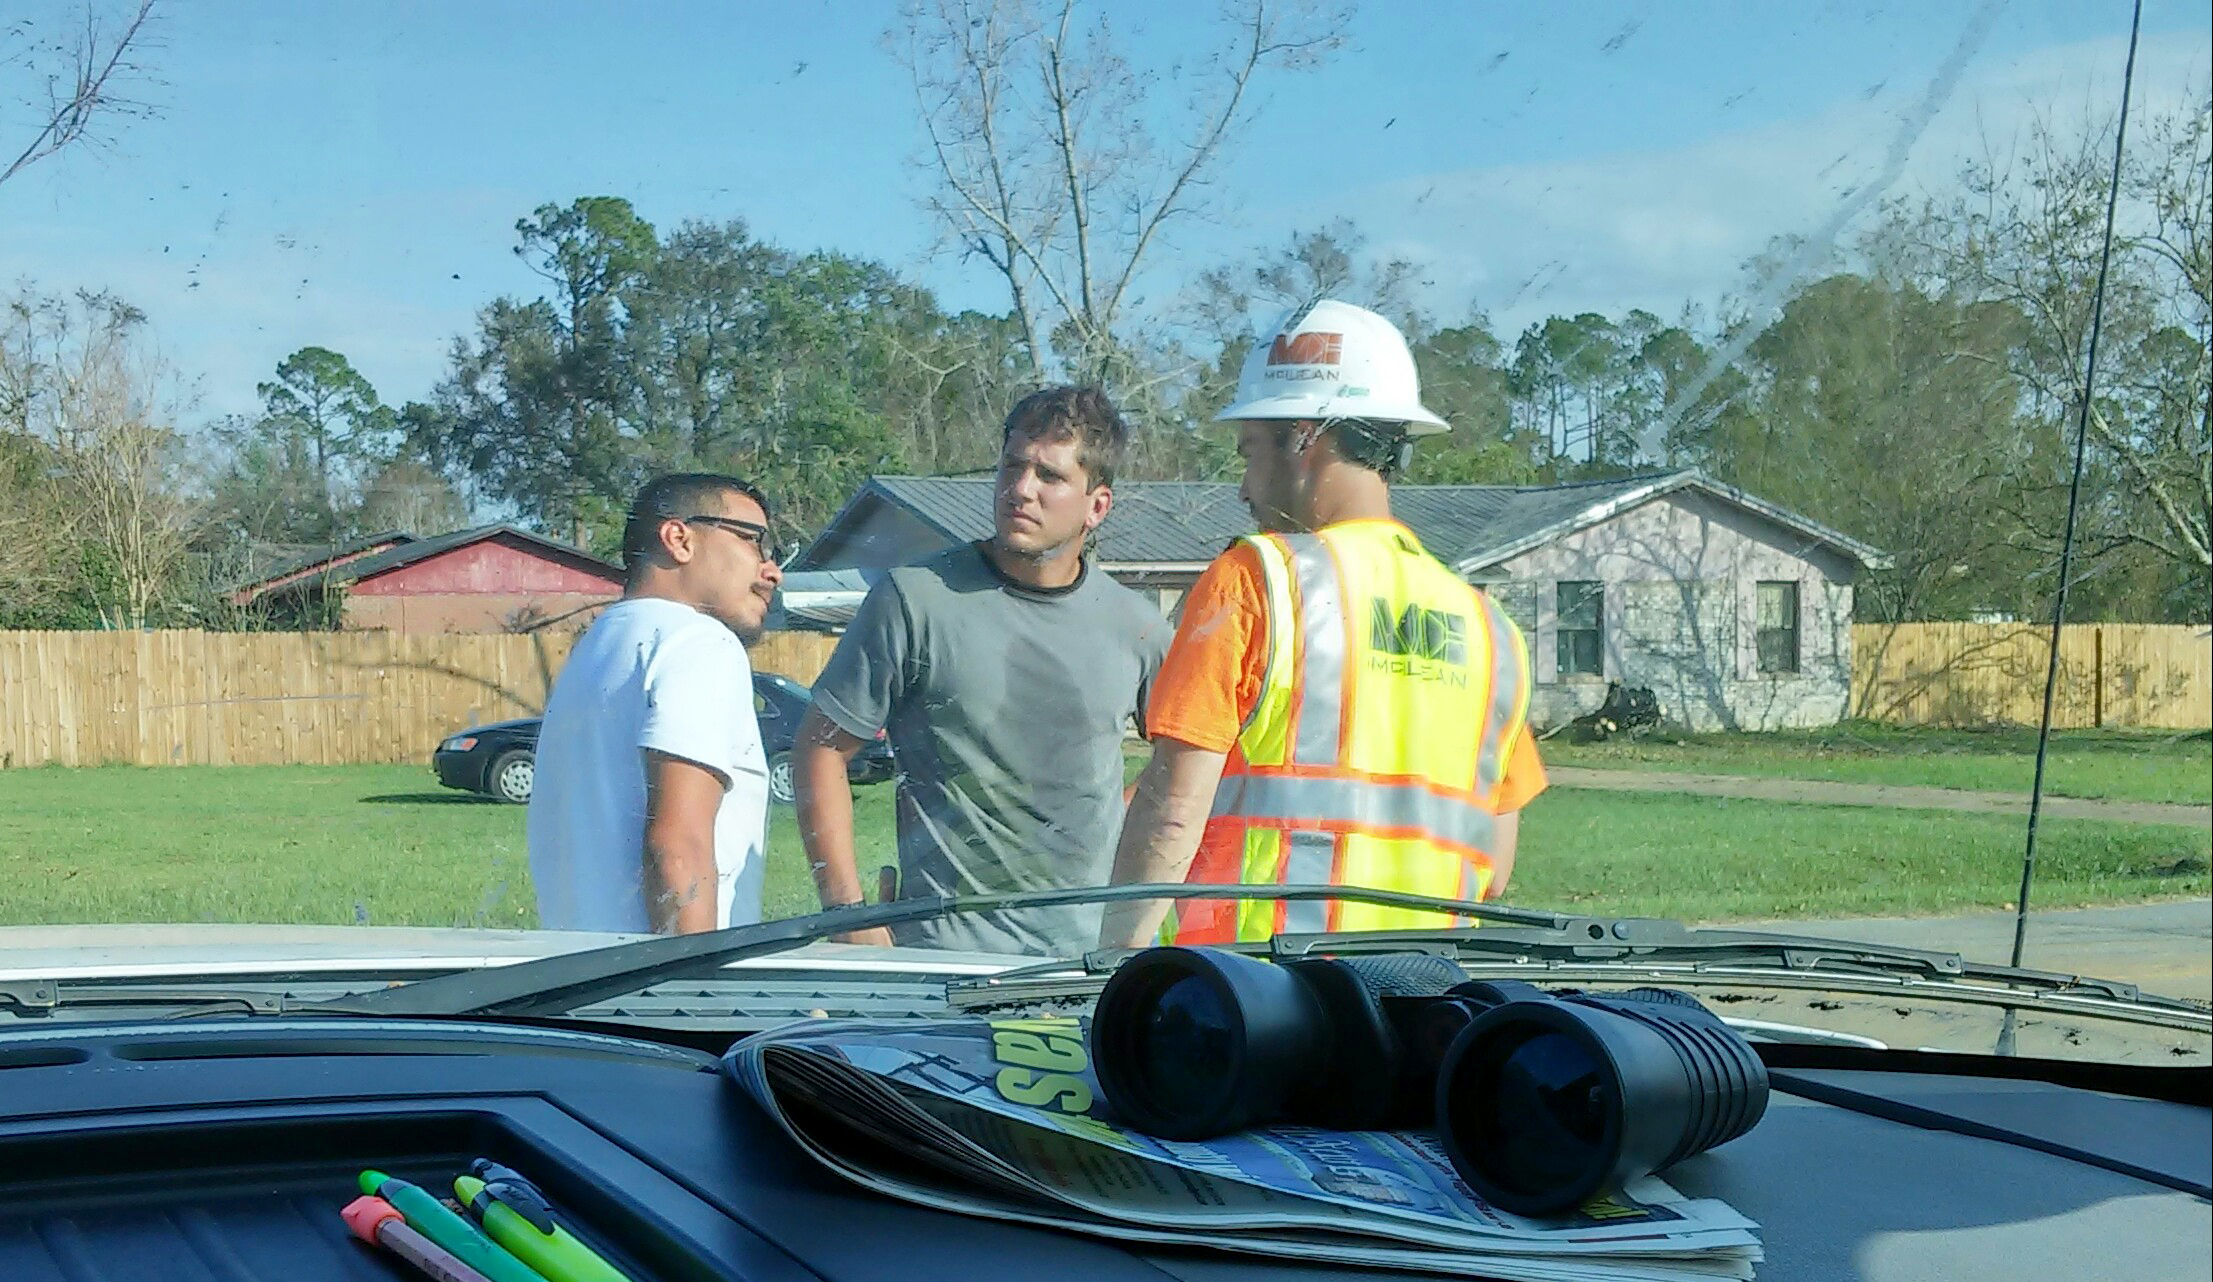 McLean's Jeffrey Durrence speaks with residents affected by the storm.